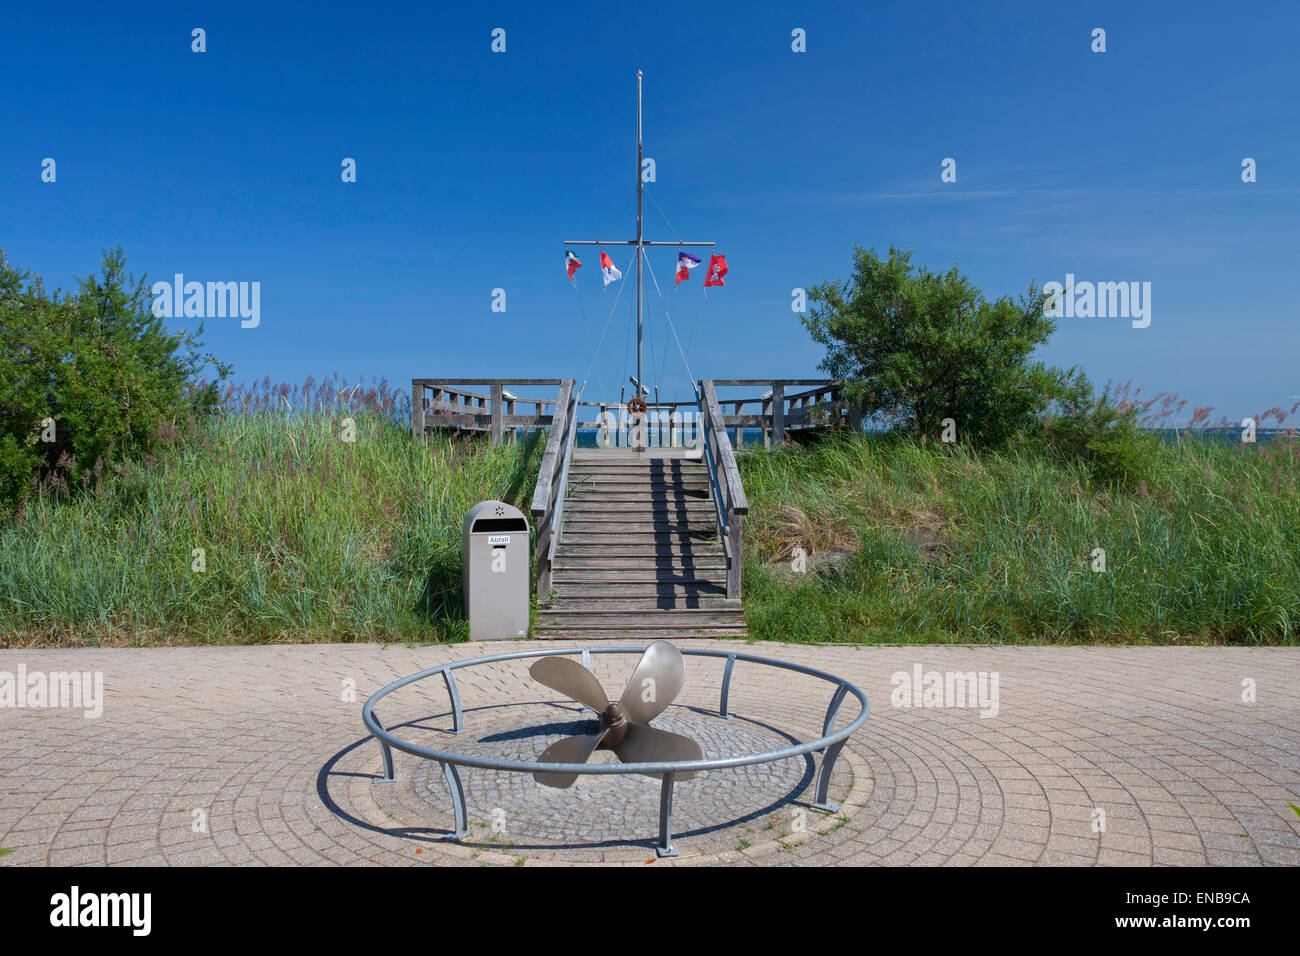 Sailors' monument along the promenade at the seaside resort Haffkrug, Scharbeutz, Schleswig-Holstein, Germany Stock Photo